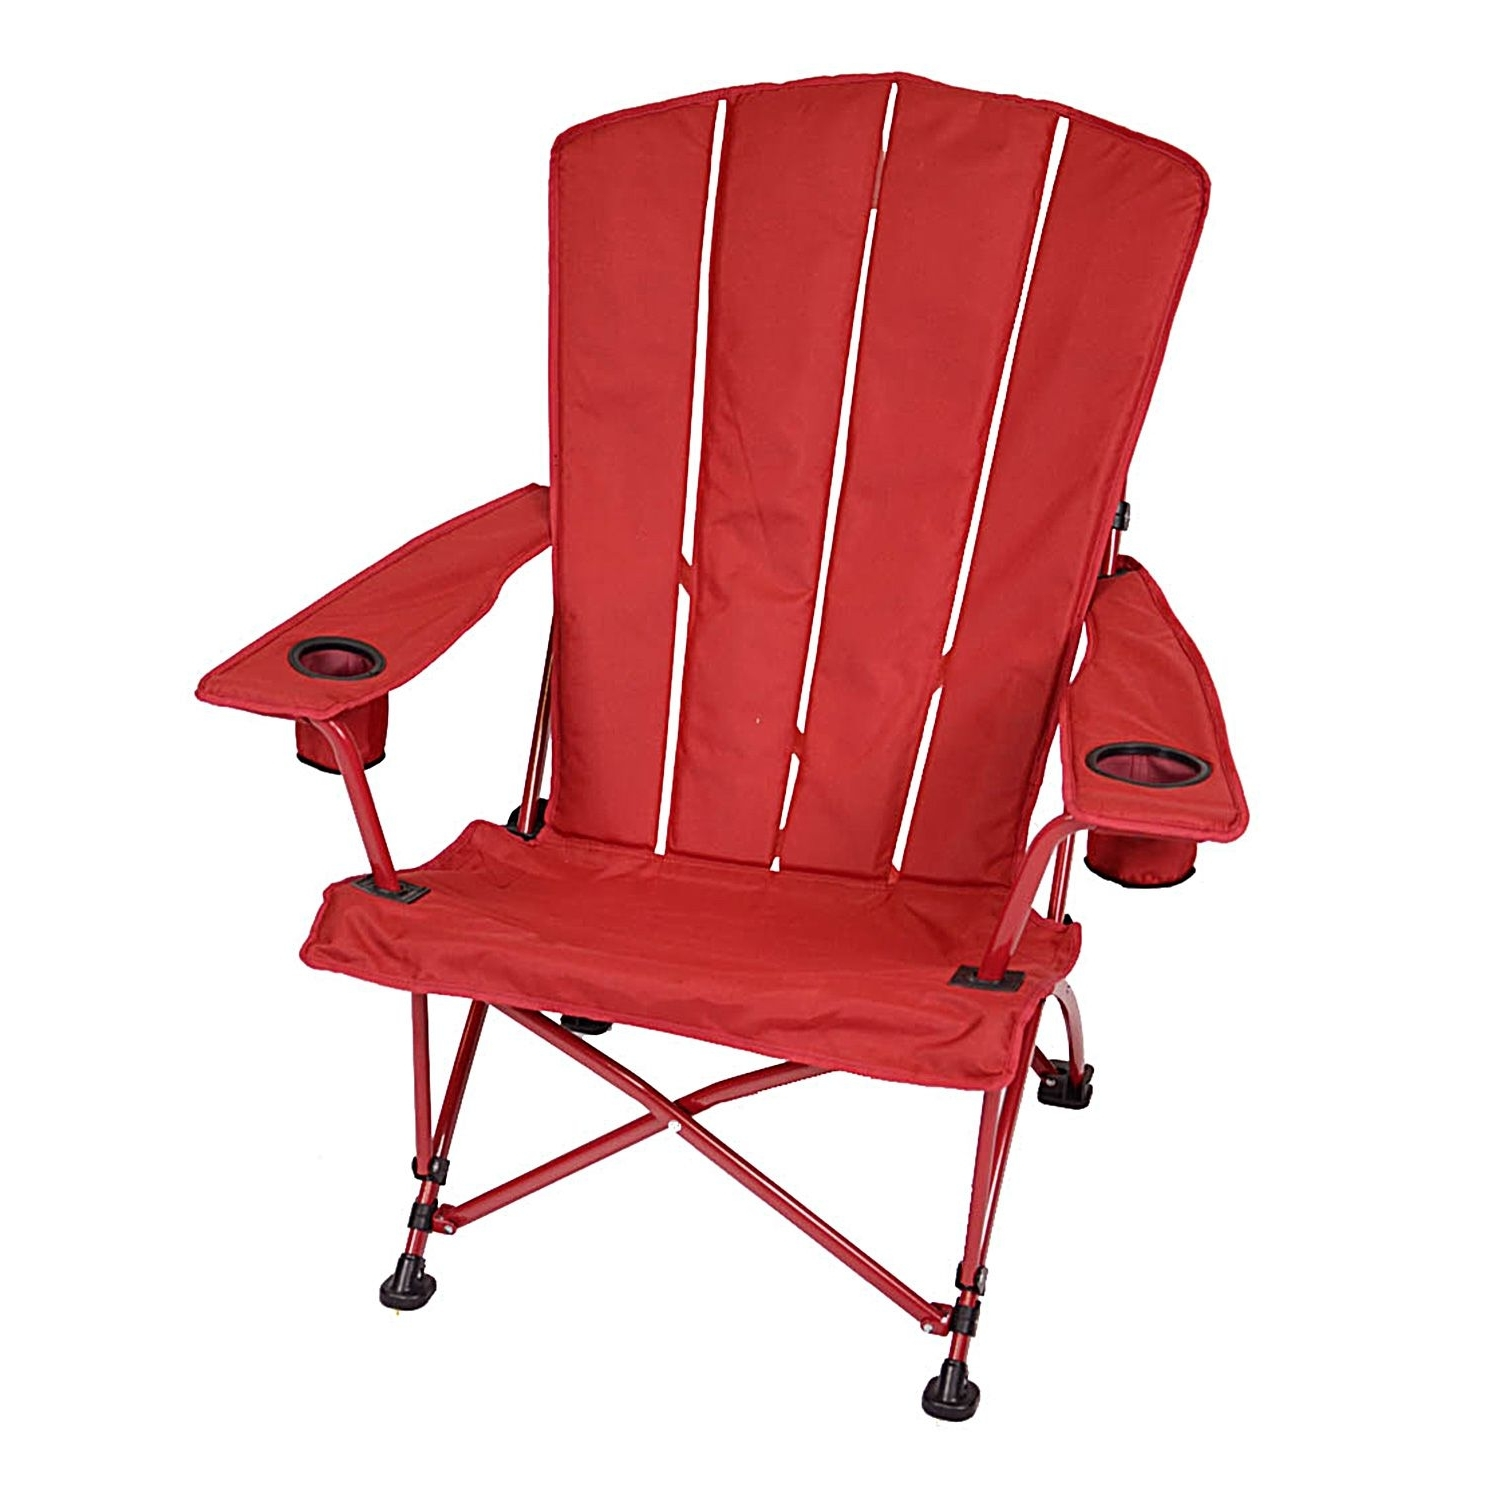 Best And Newest Foldable Adirondack Chair – Red – Sam's Club Most Comfortable Camp Within Sam's Club Chaise Lounge Chairs (View 3 of 15)